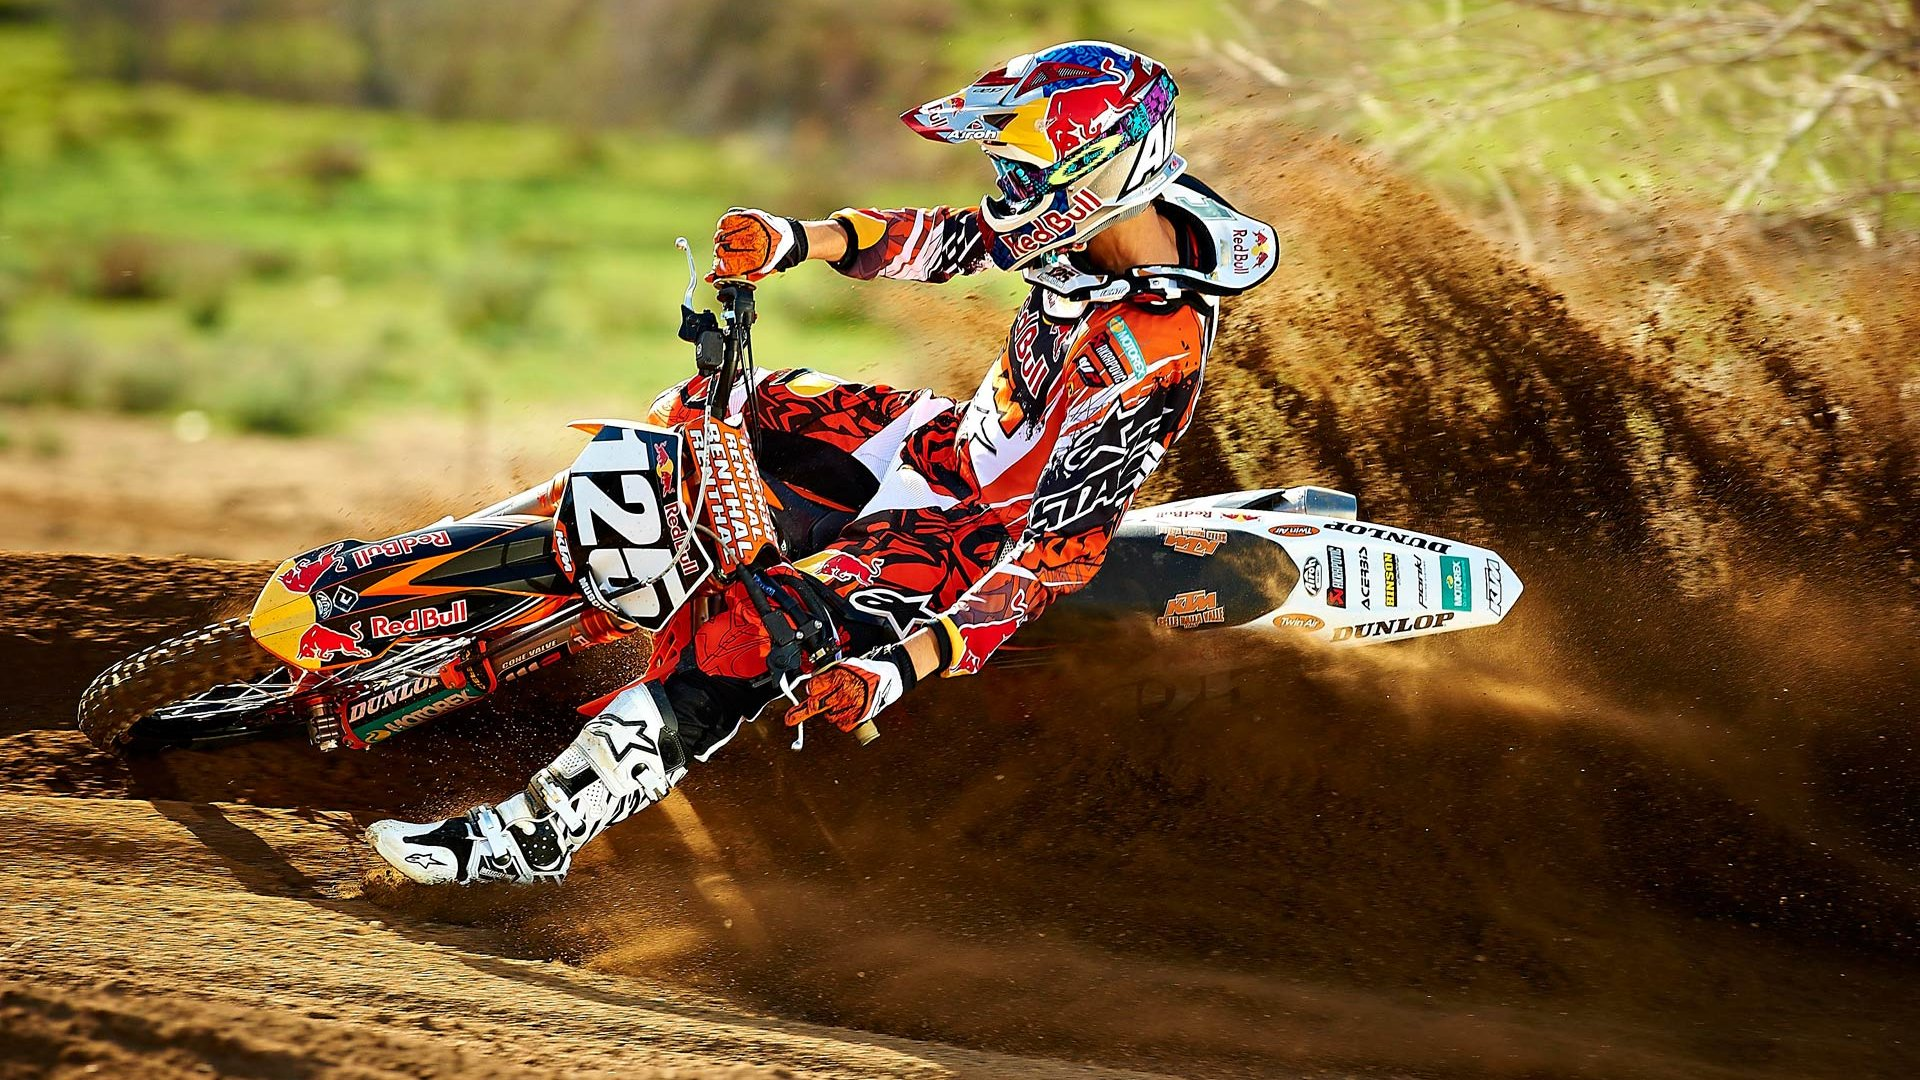 Marvin Musquin Wallpapers - Racer X Online Race 2 Wallpapers Hd